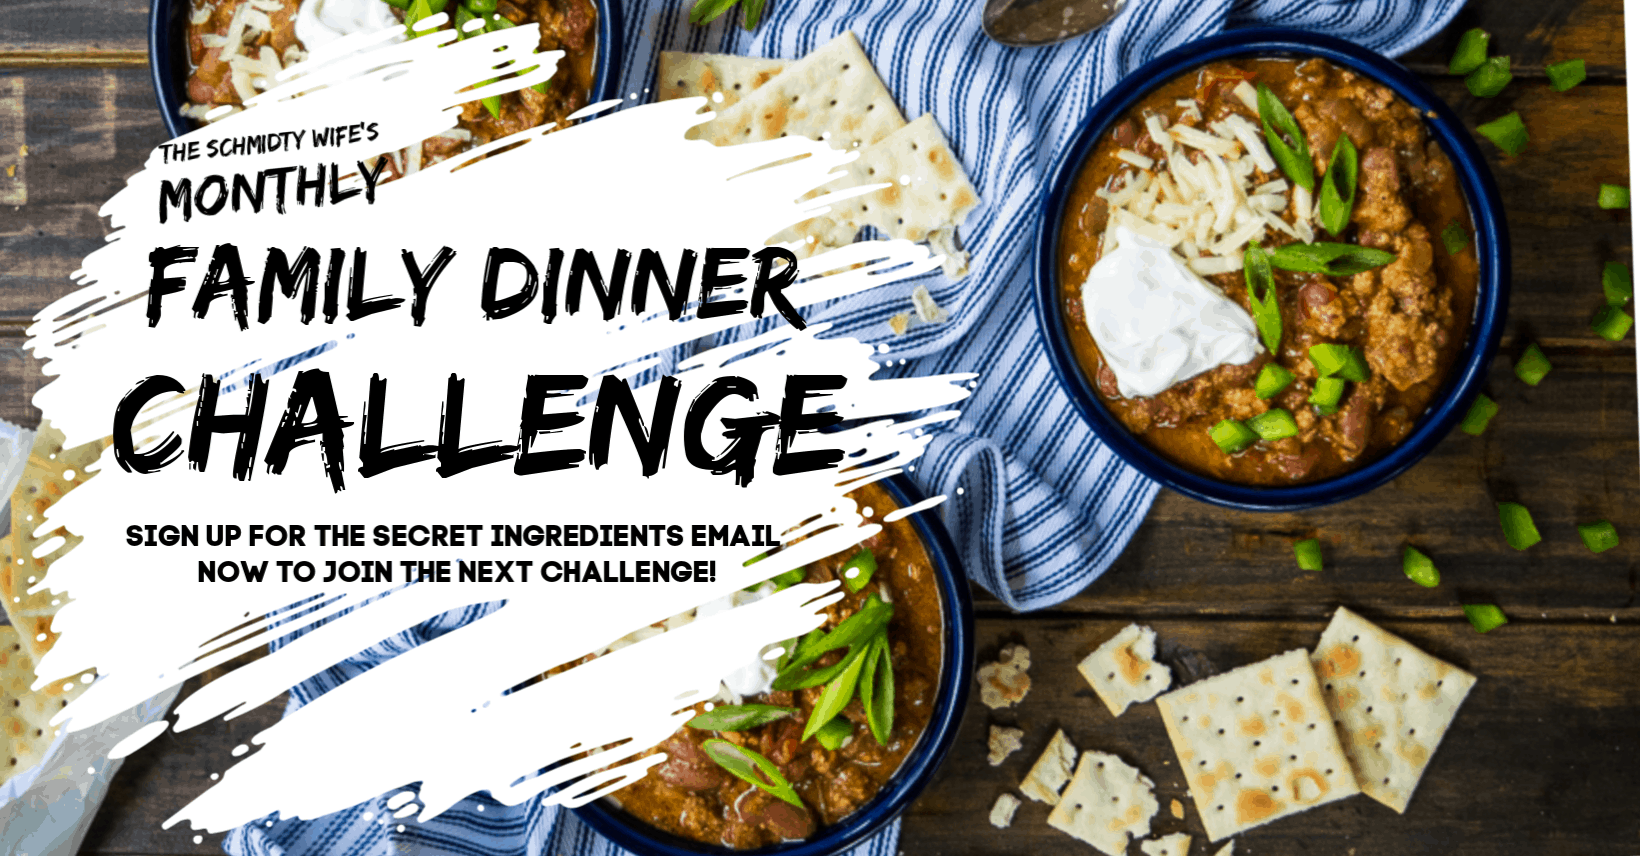 Monthly Family Dinner Challenge Banner asking for email sign up